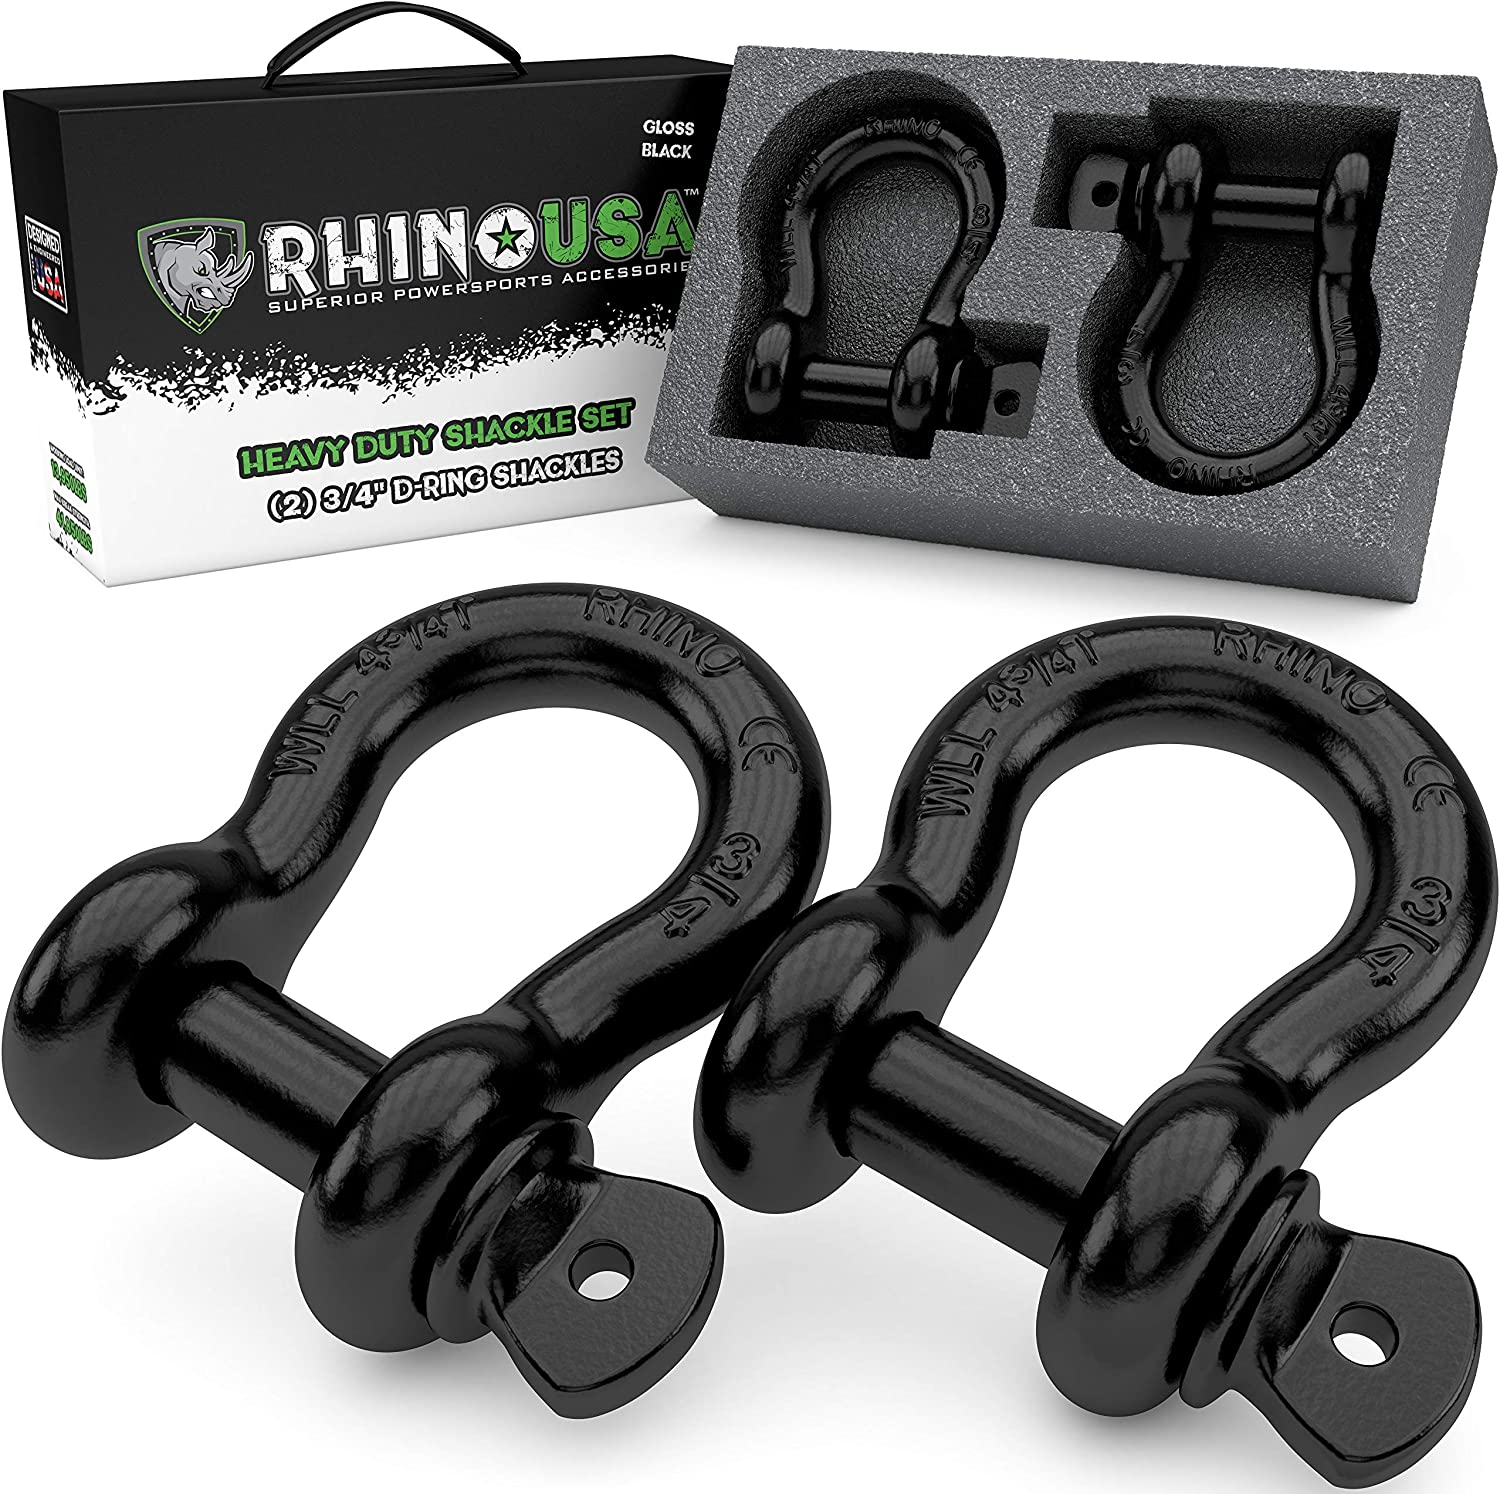 Hauling Stump Removal /& Much More - Shackle for Vehicle Recovery Best Offroad Towing Accessory for Jeeps /& Trucks!/… 41,850lb Break Strength Rhino USA Combo D Ring Shackles /& 20 Tow Strap